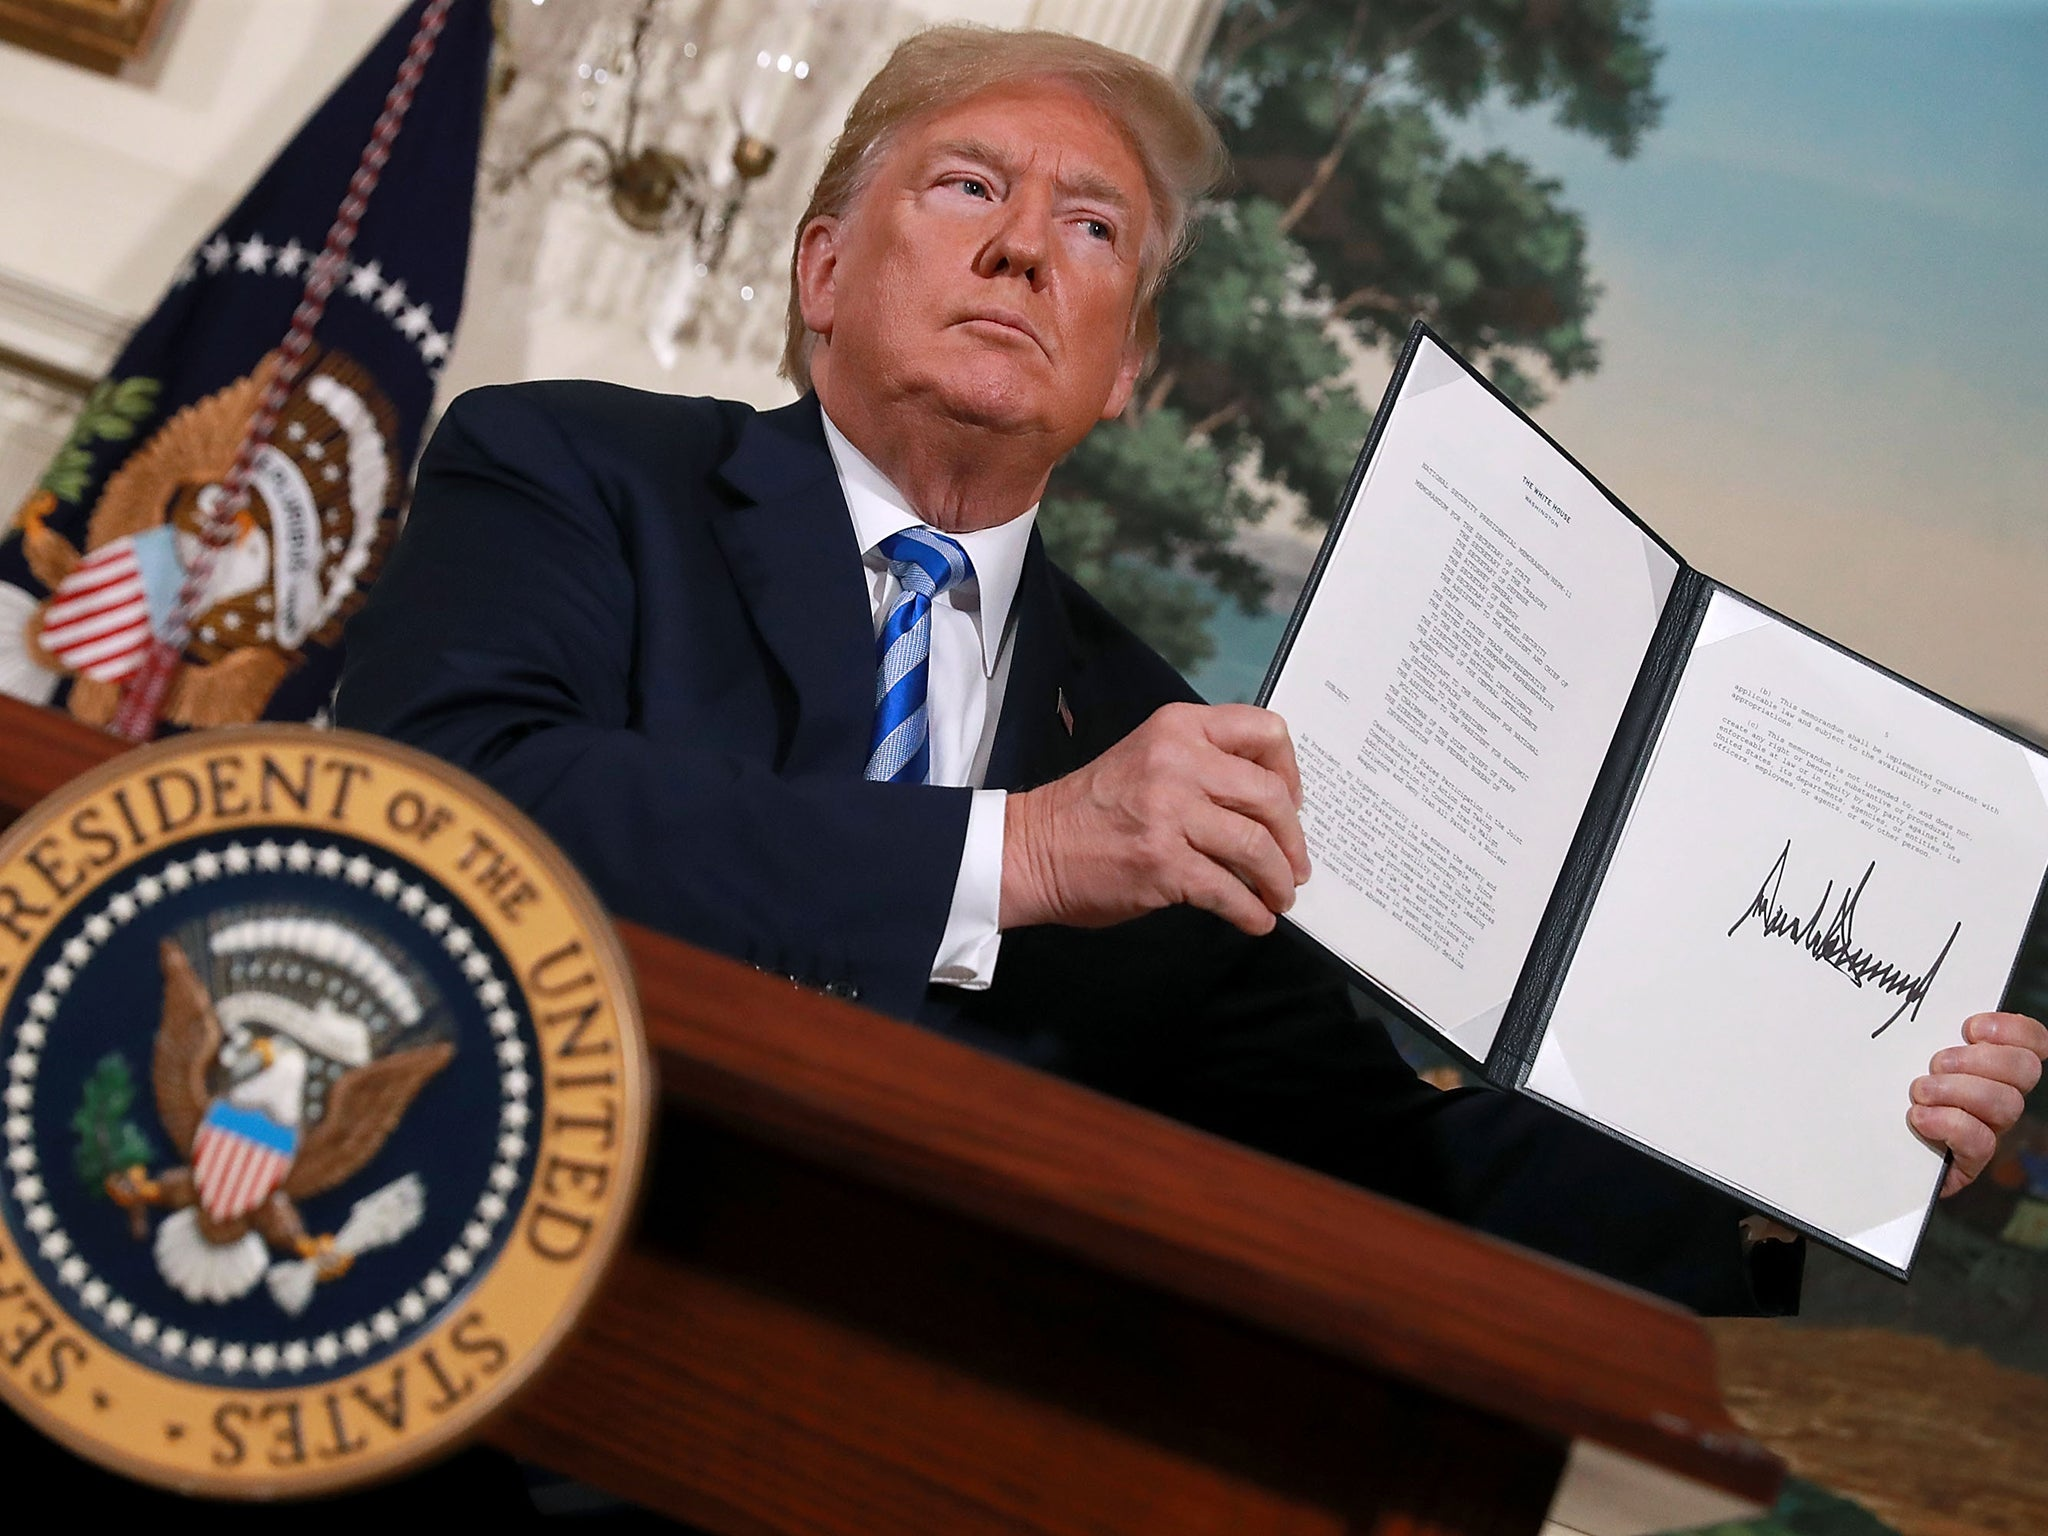 Iran deal: State Department nuclear expert quits after Trump withdraws US from agreement